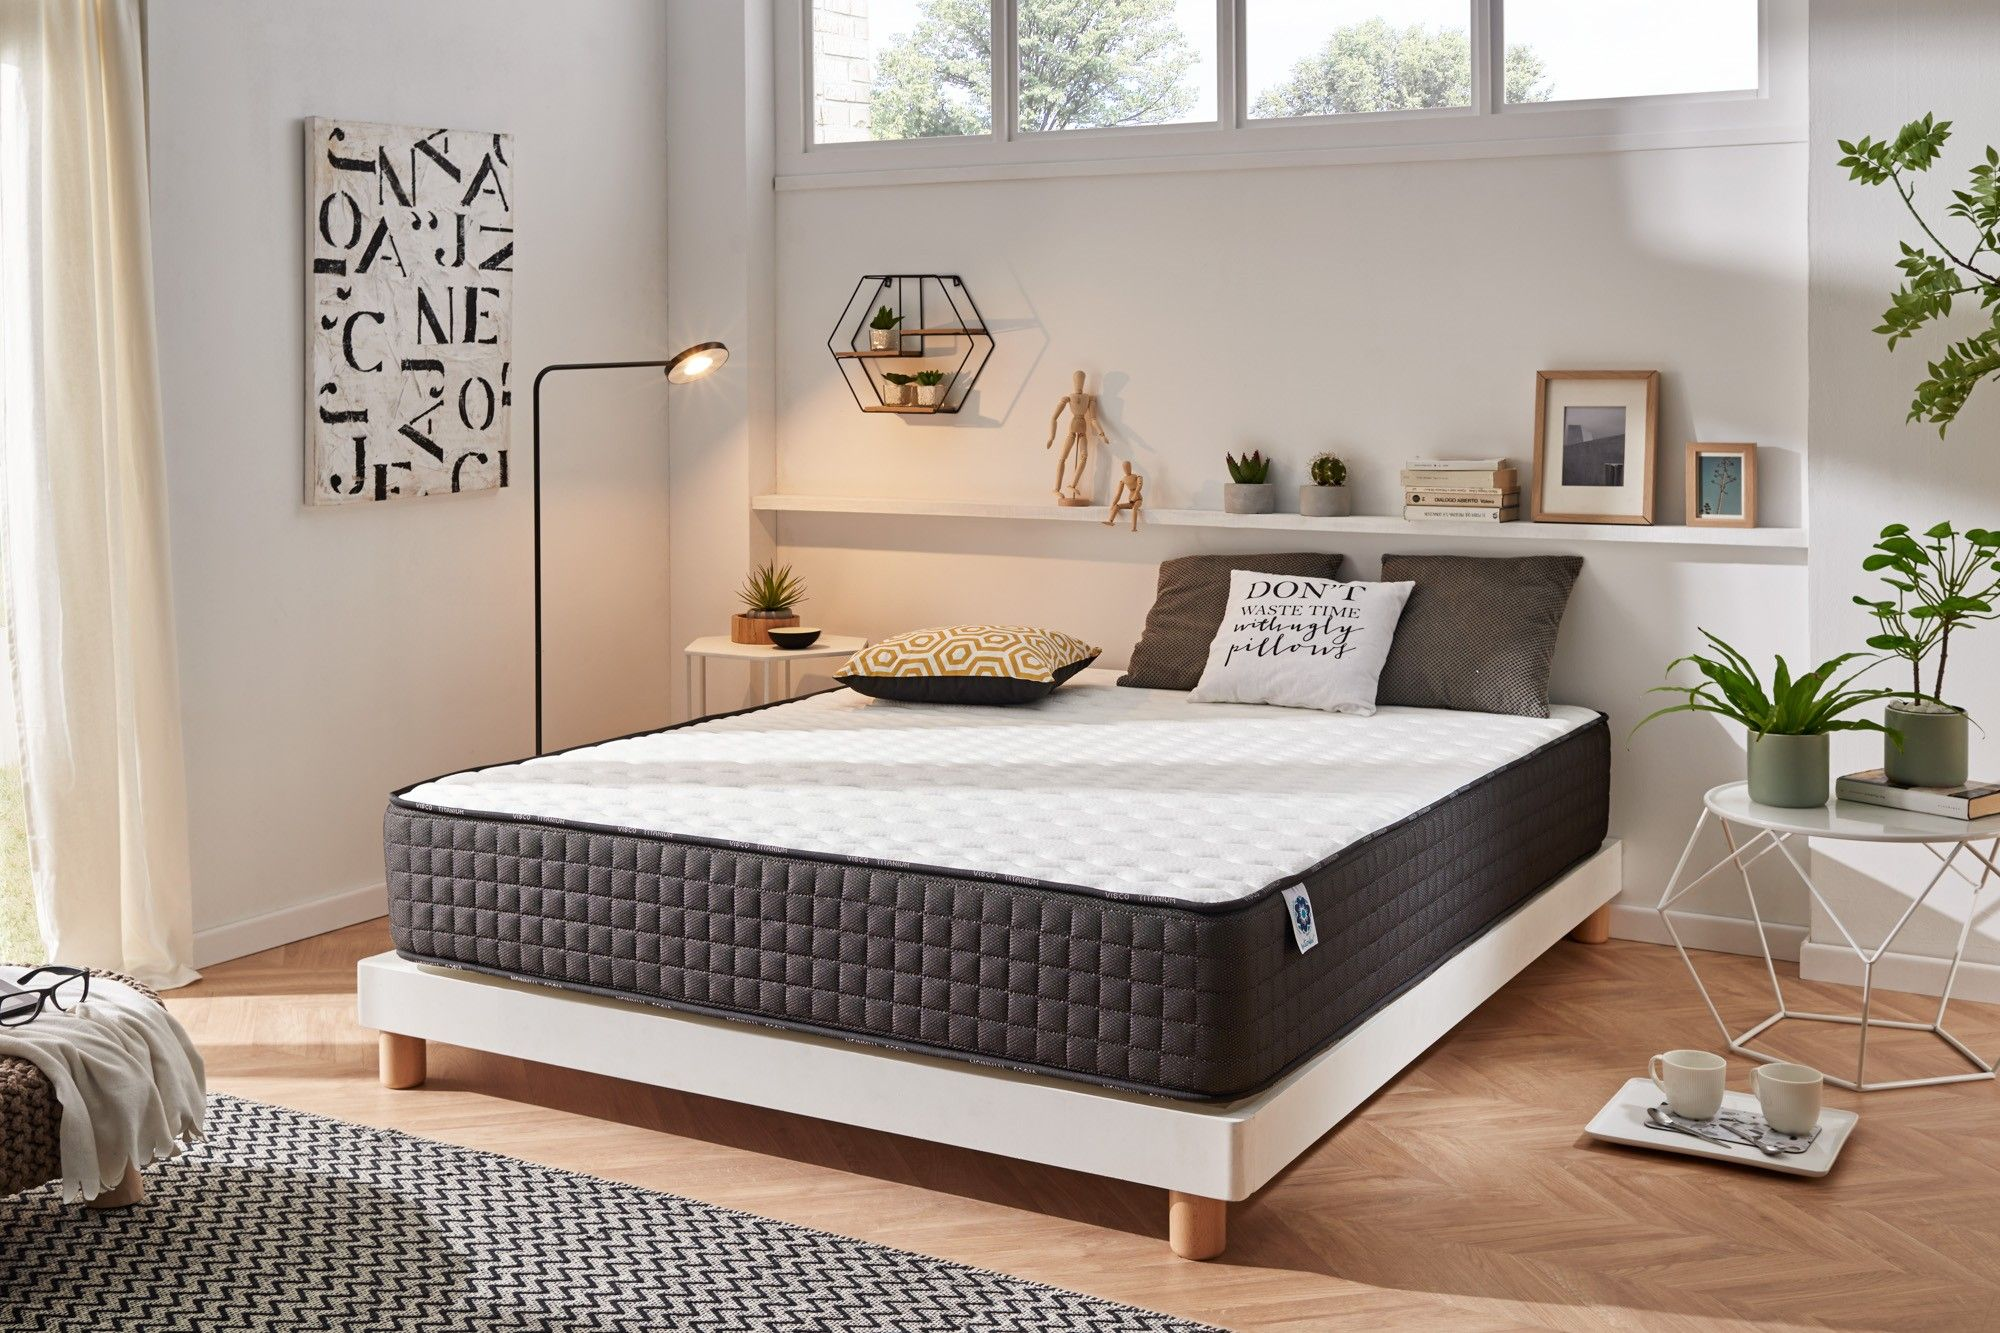 With 30 cm of thickness and Naturalex ® technologies, it is ideal for people looking for a Premium mattress.